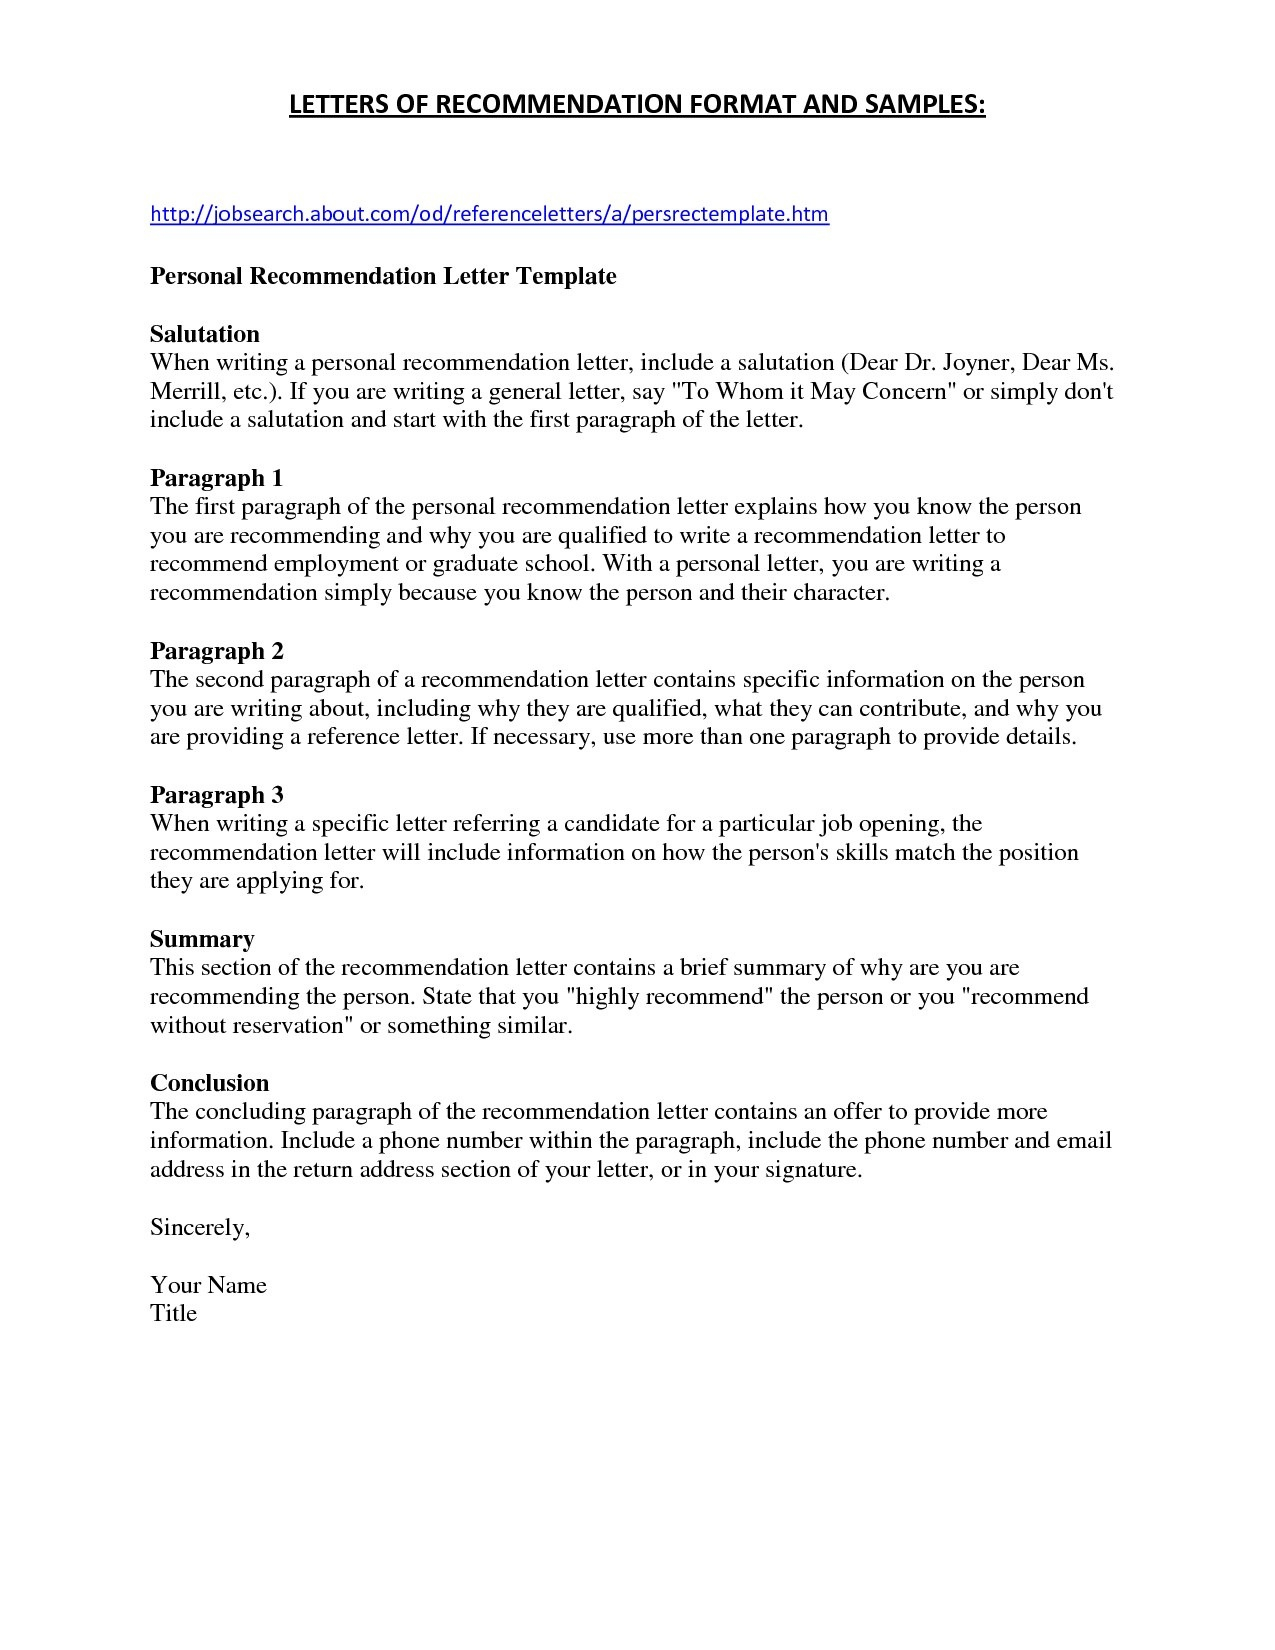 Police Officer Resume Template - Police Ficer Resume Examples New Police Ficer Resume Resume Samples